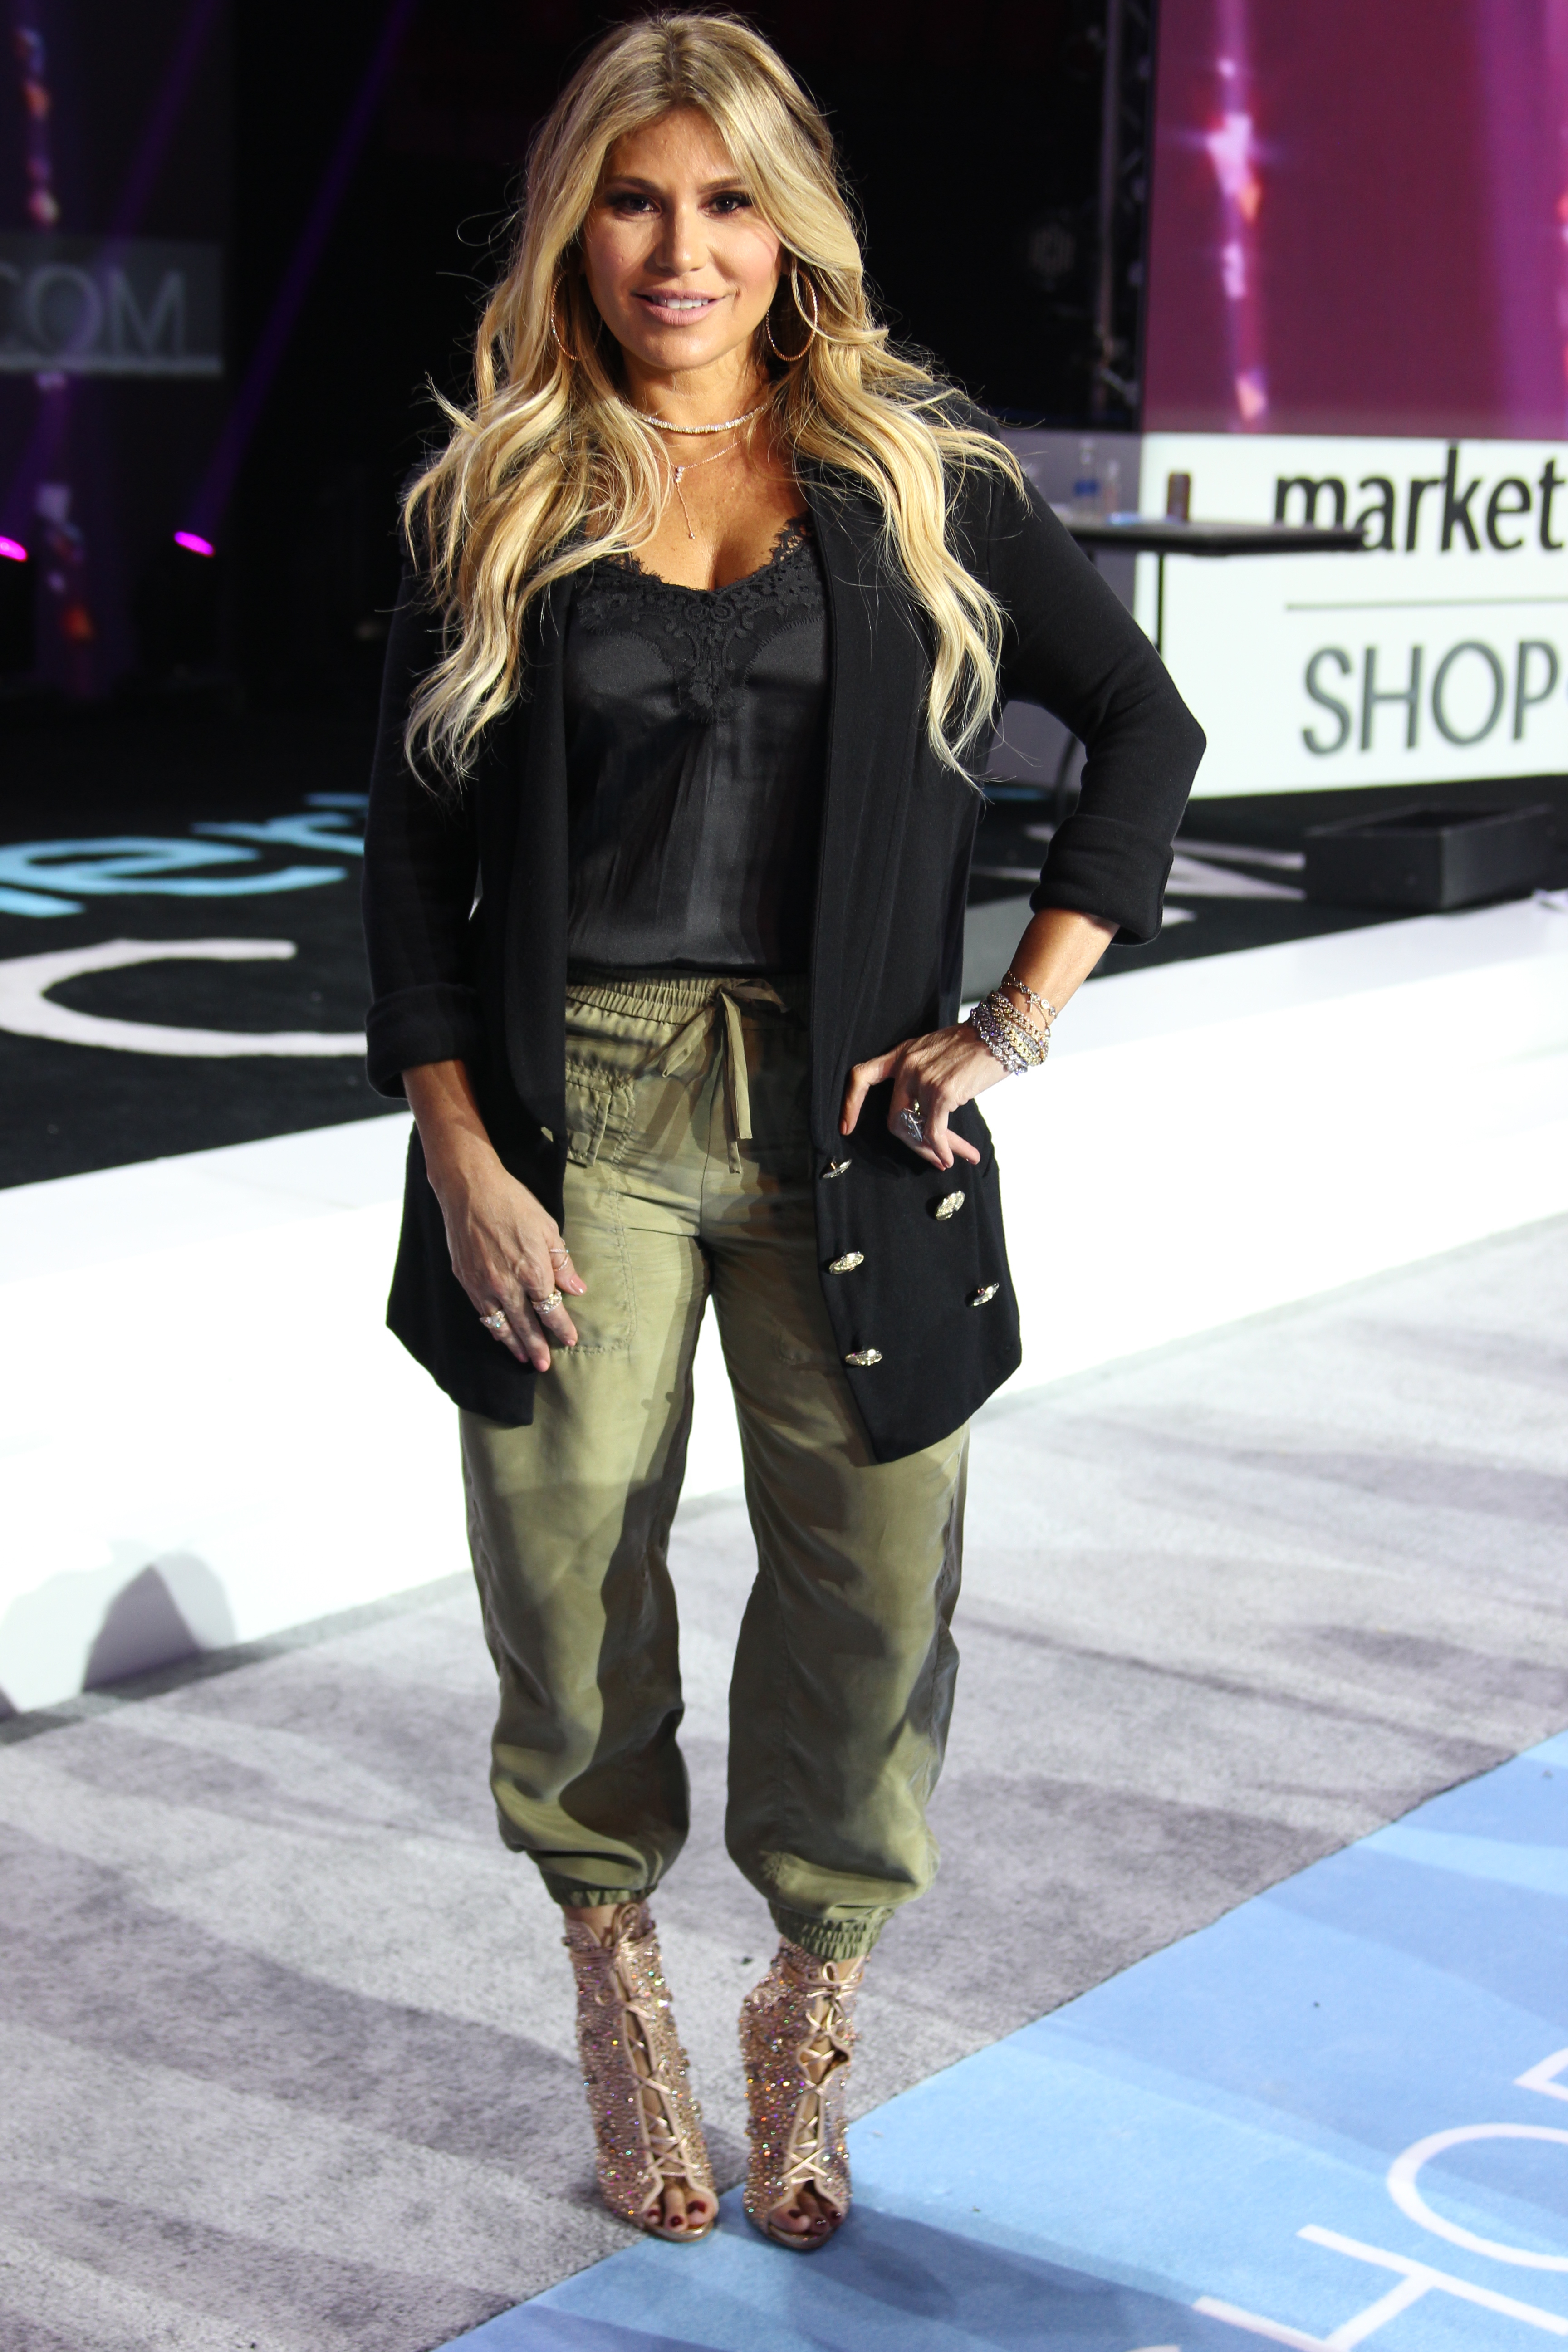 loren ridinger, mawc, mac my outfit, my style, trends, outfit, jennifer lopez x Giuseppe, rehearsal day